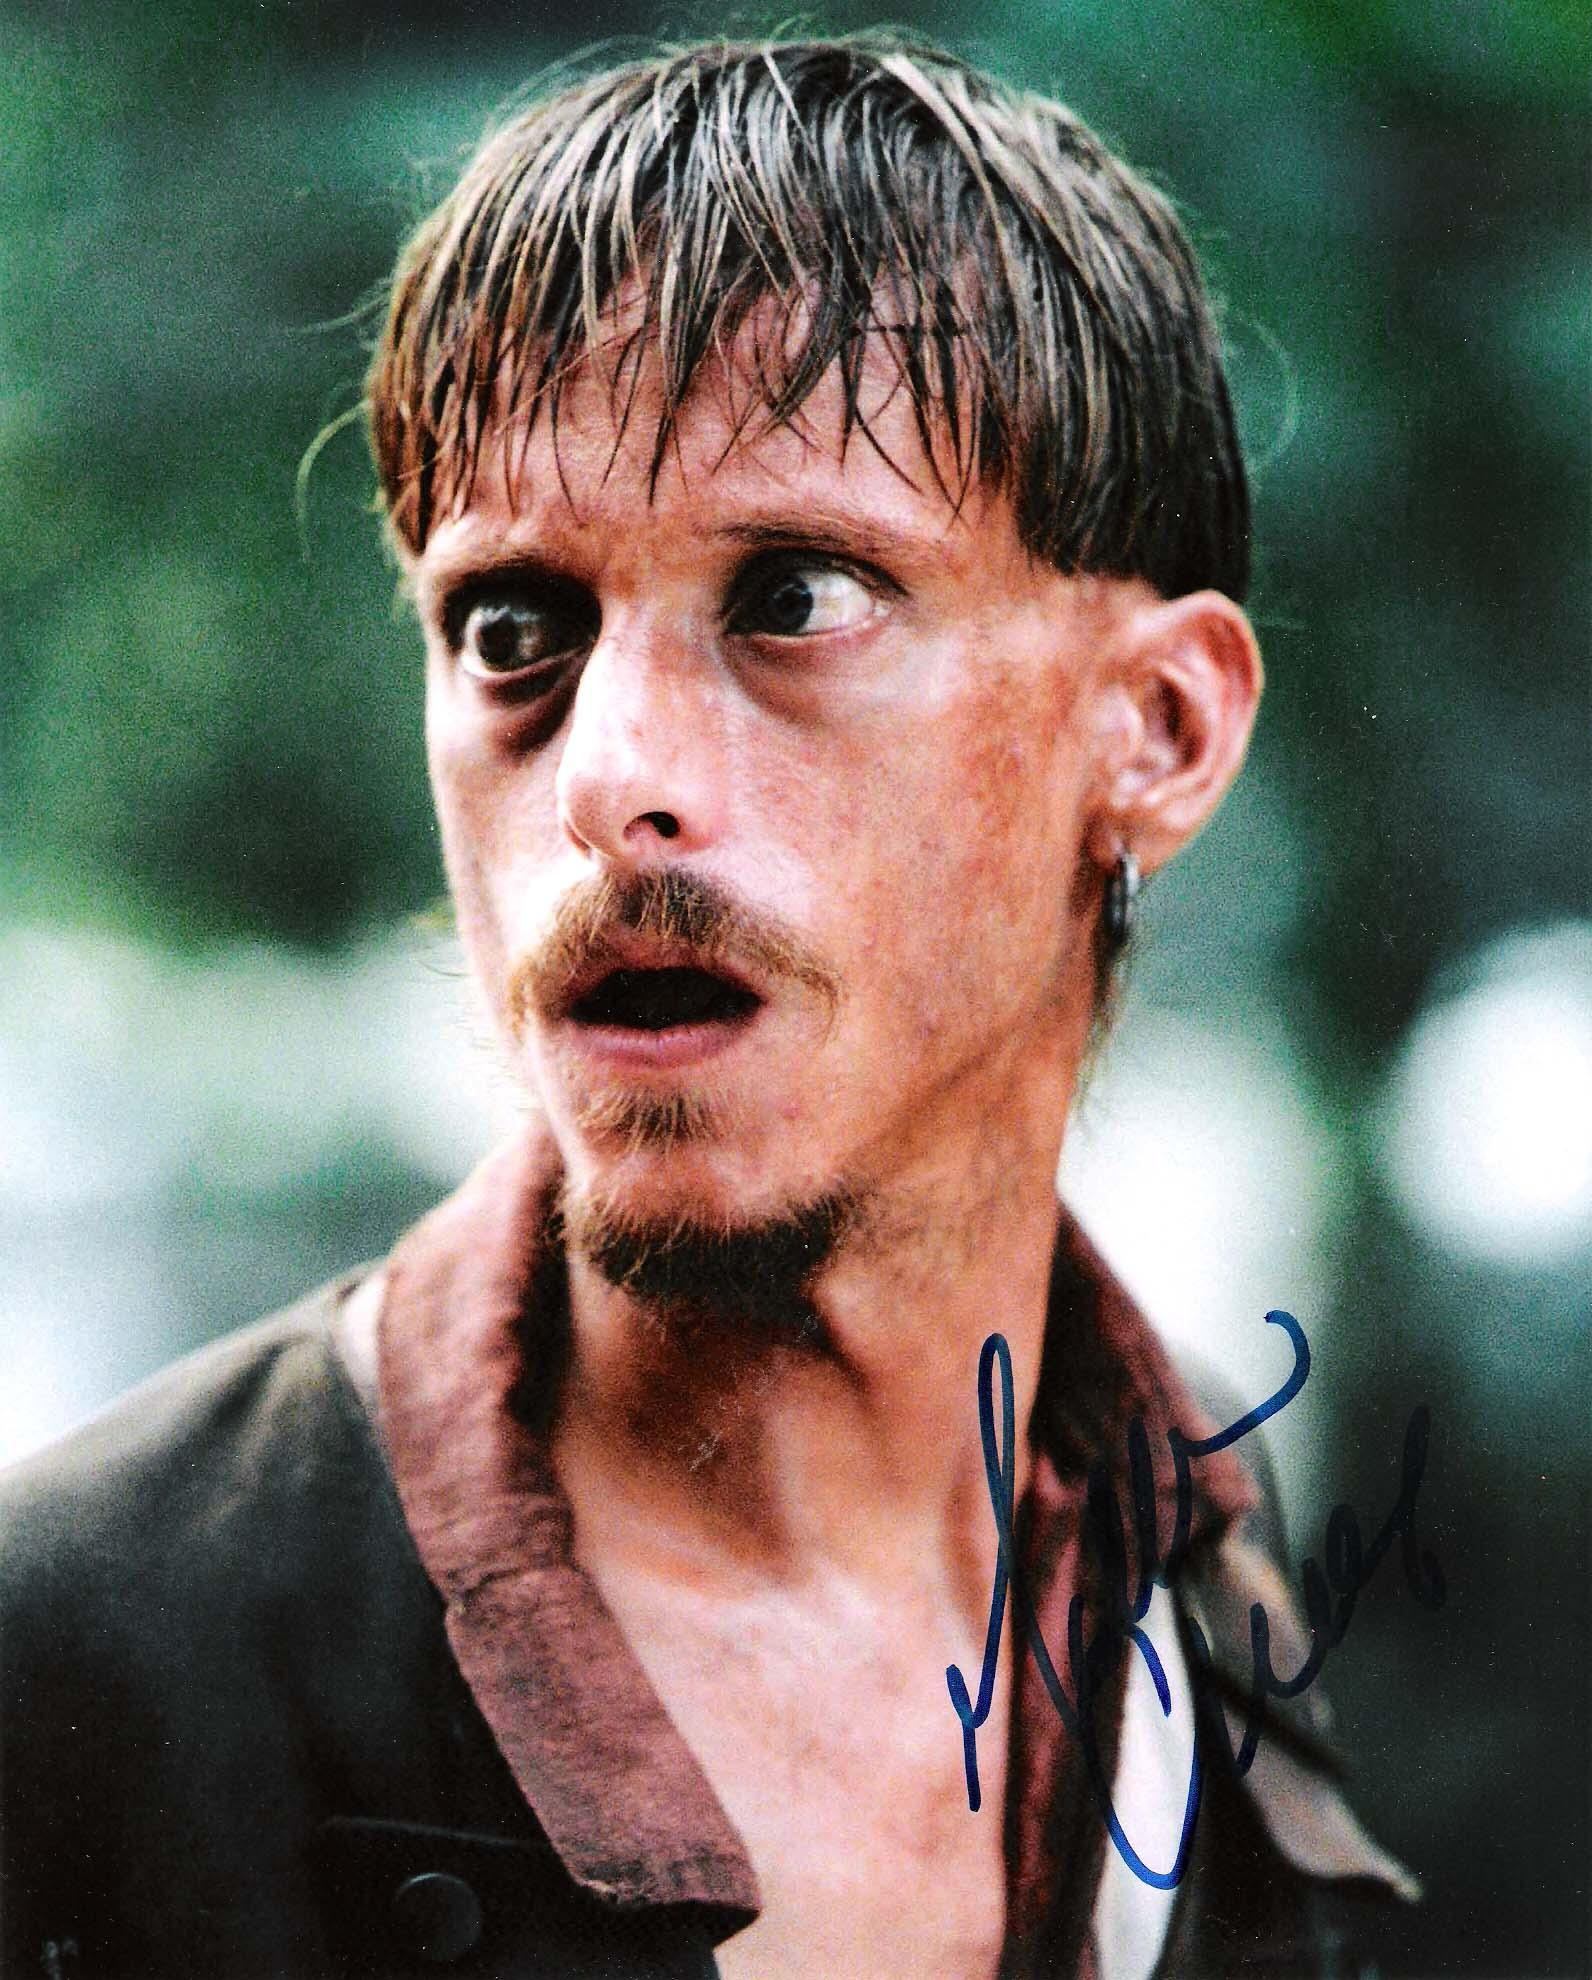 """MACKENZIE CROOK """"PIRATES of the CARIBBEAN"""" as RAGETTI - Signed 8x10 Color Photo"""